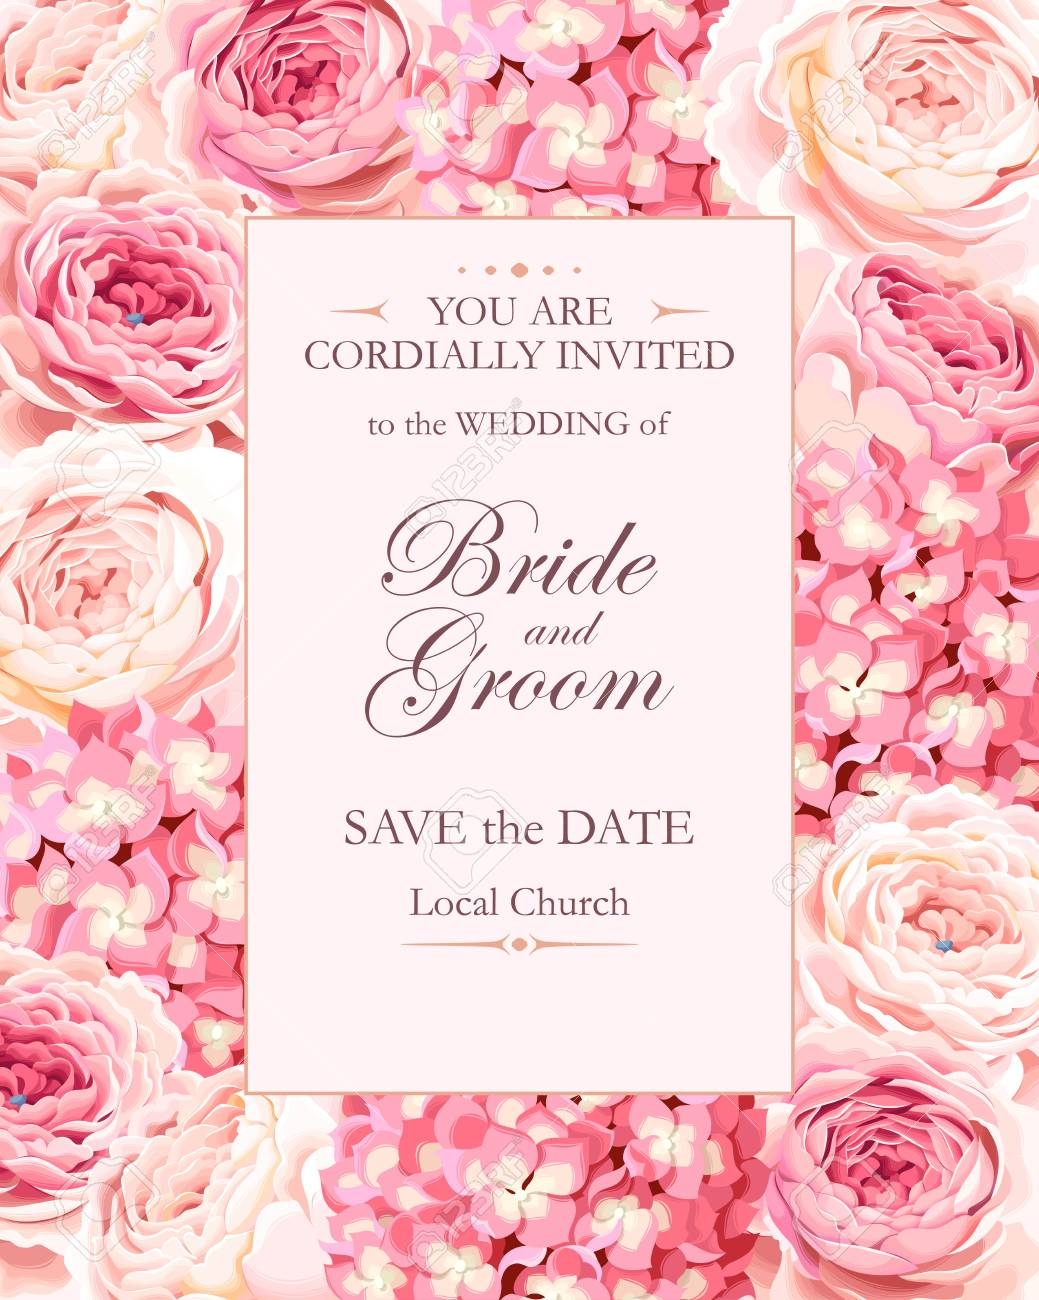 Vector vintage wedding invitation decorated with roses and hydrangea - 68300759